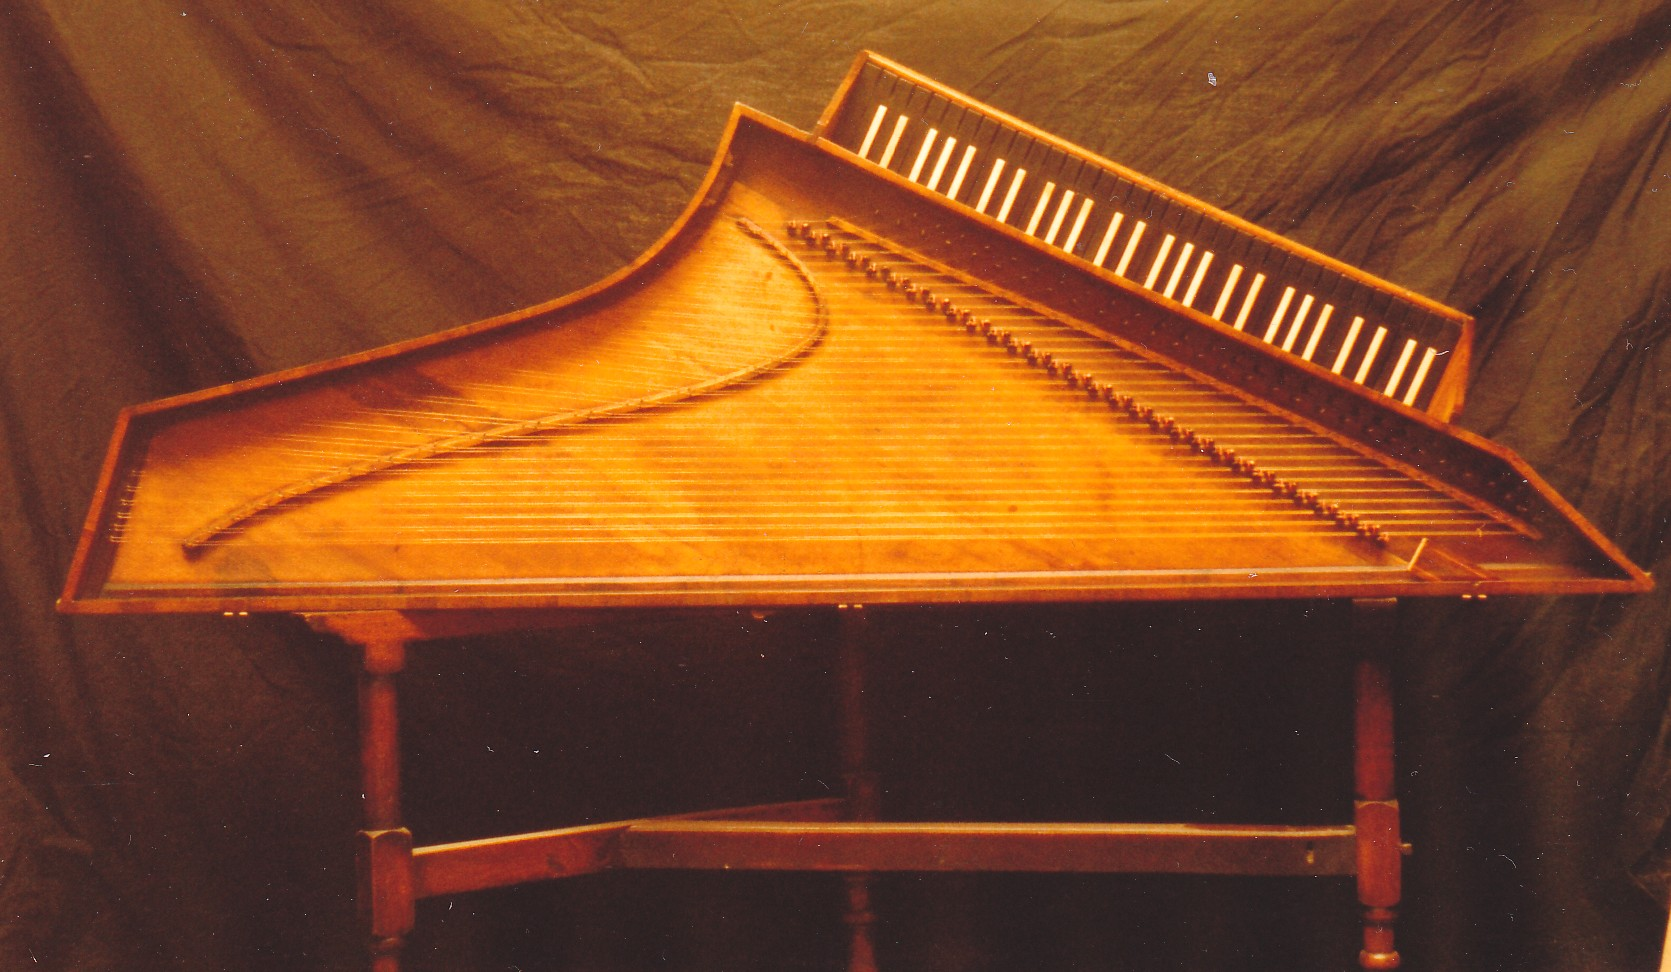 Thomas Haxby 1764 spinet